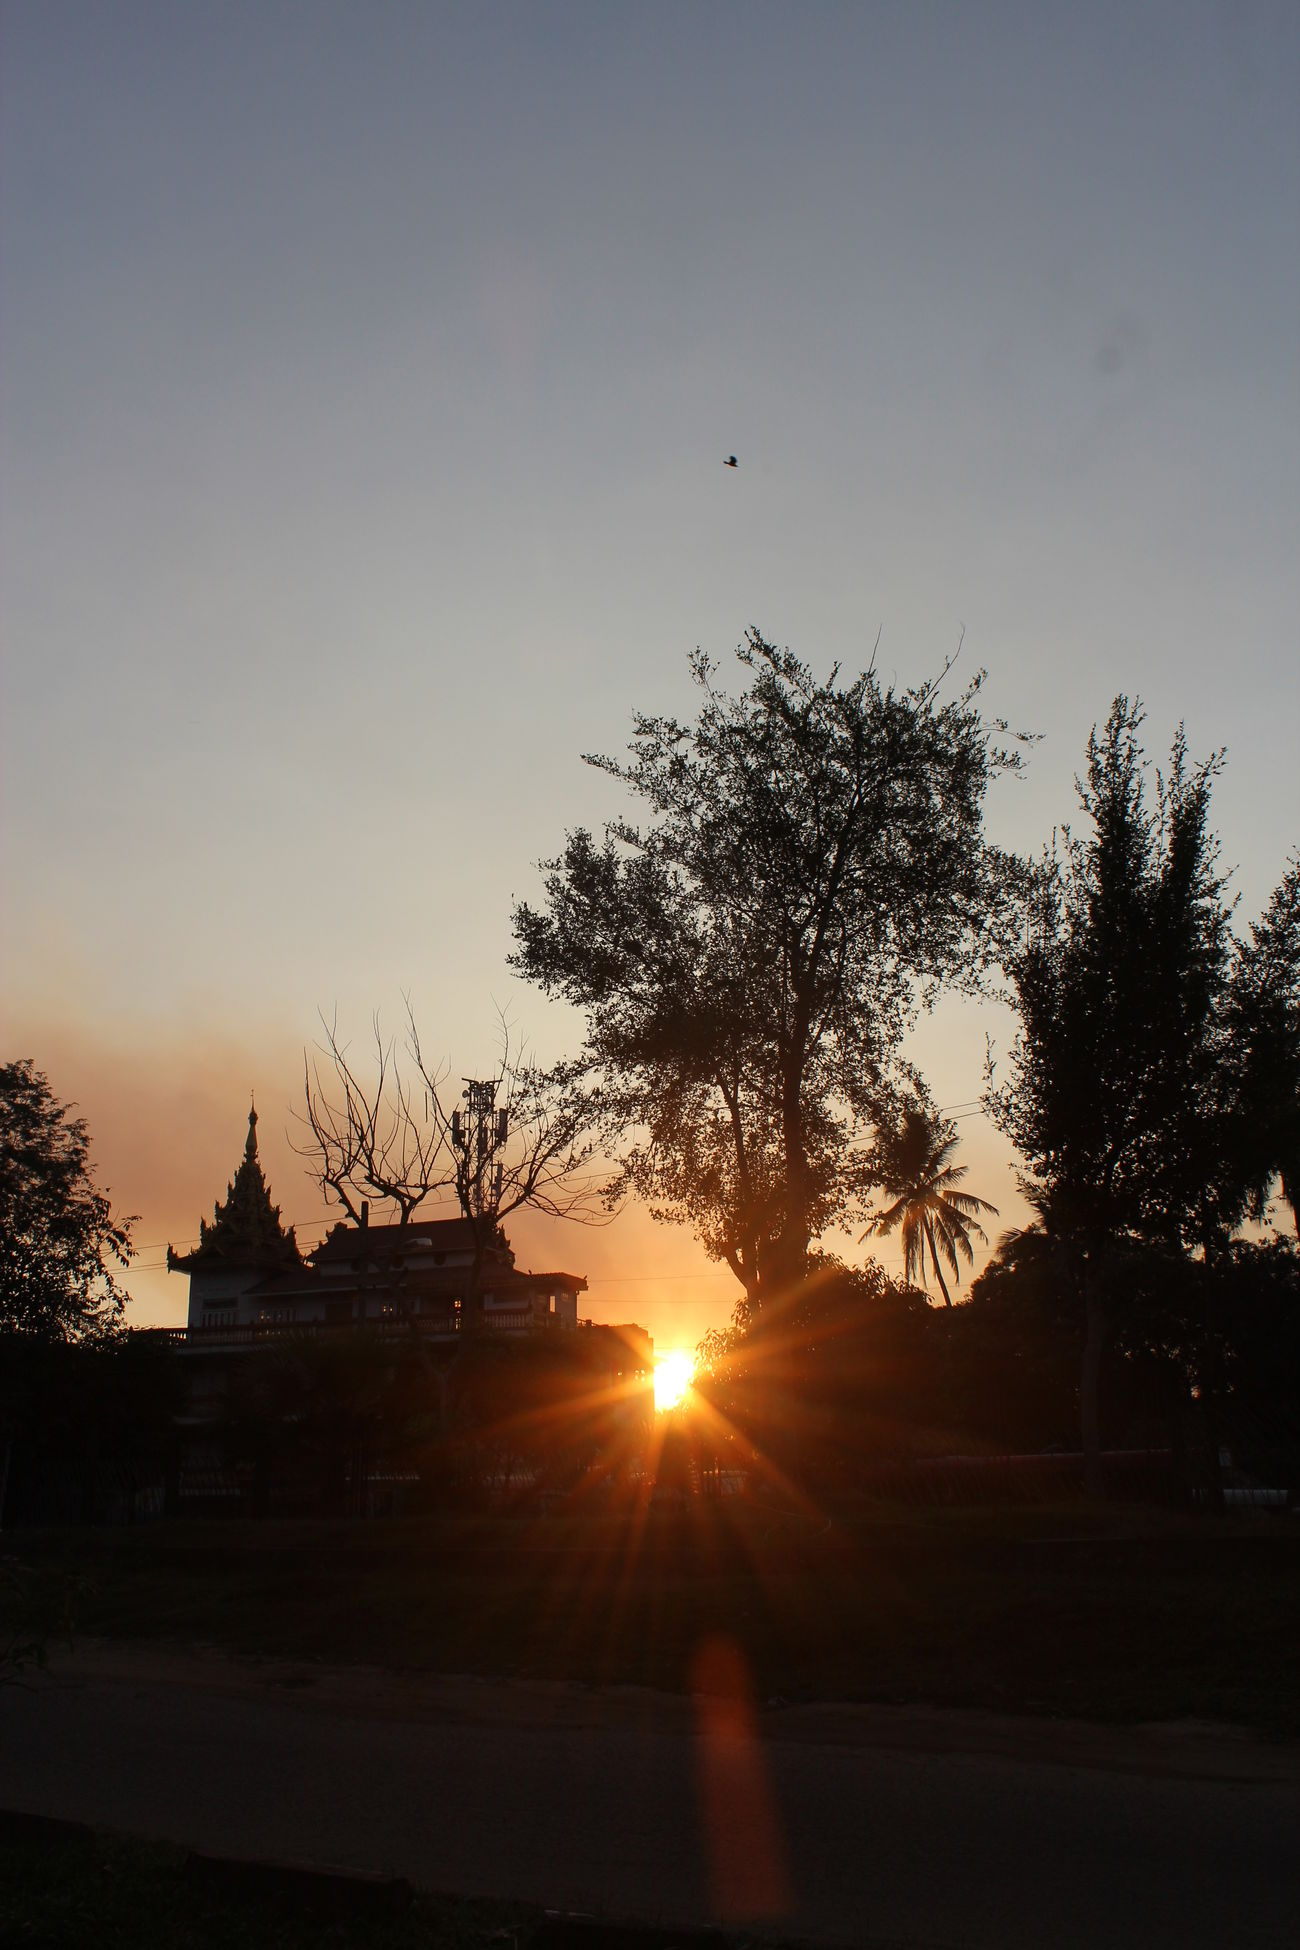 Sunset Sky Sunset_collection Sunlight Through Trees Nature Photography Trees Brunches Monestary Evening Sky Nature_collection from Kandawgyi Park in Yangon, Myanmar